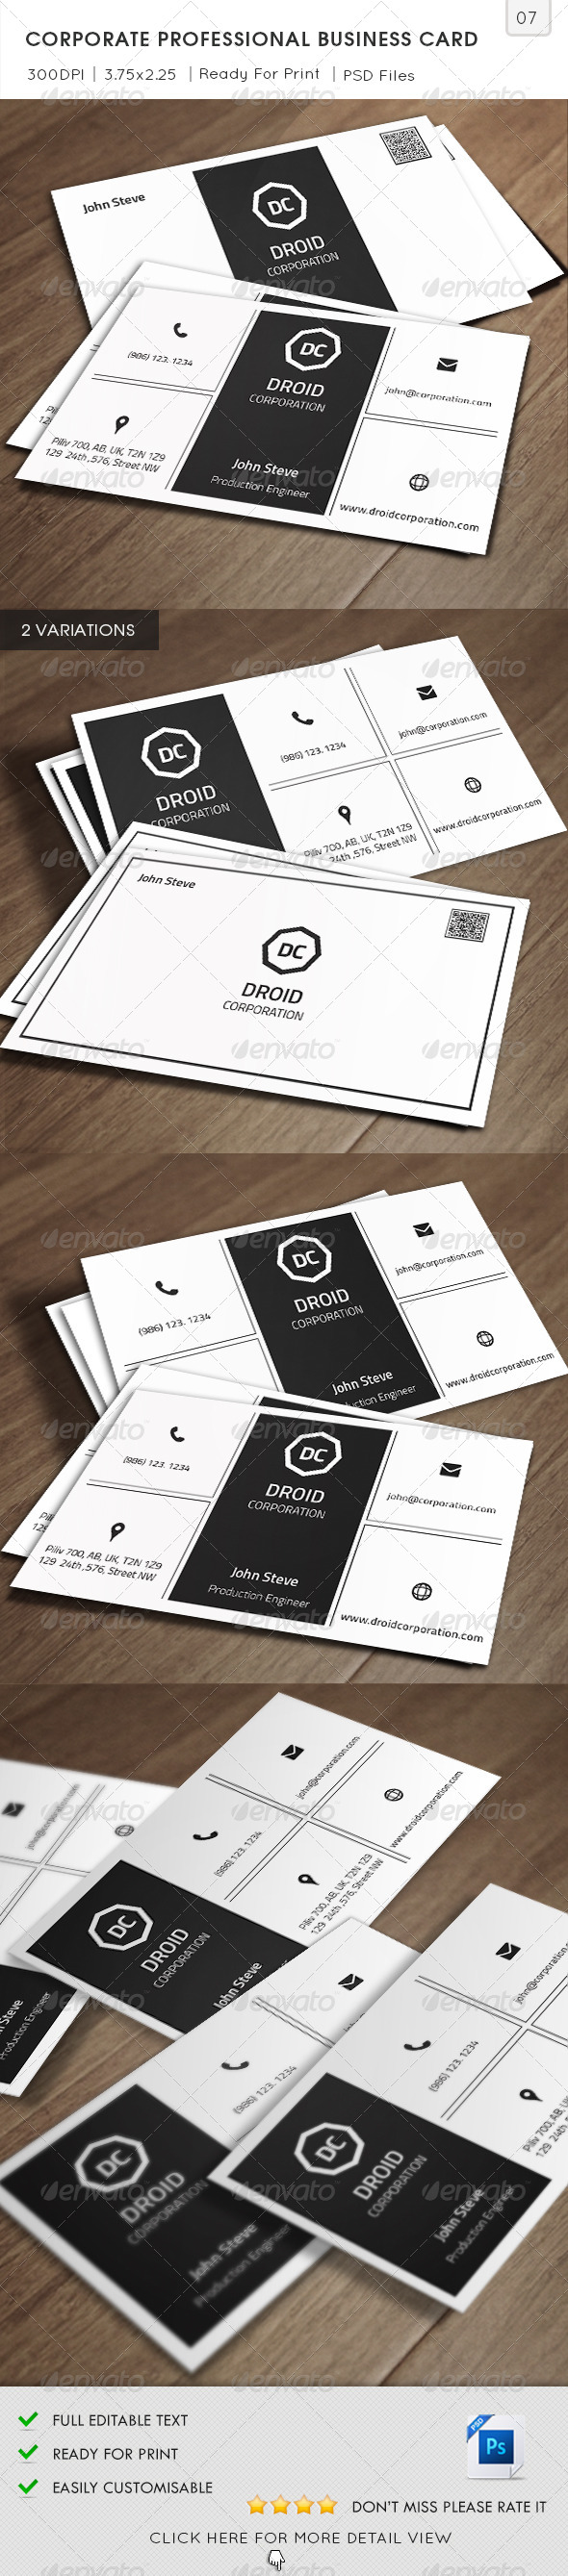 GraphicRiver Corporate Professional Business Card v07 5905119